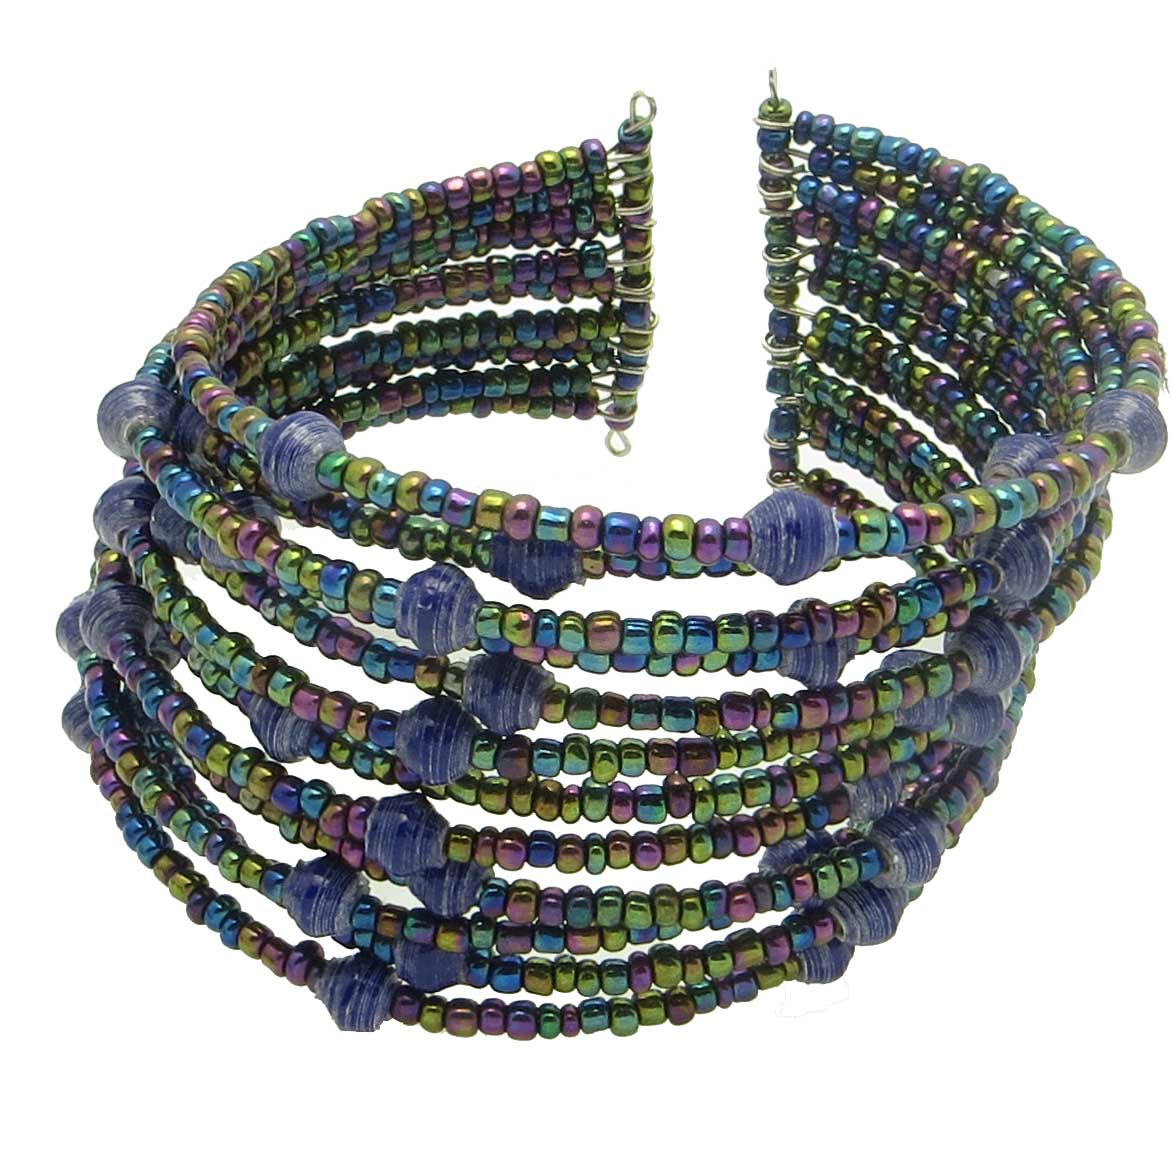 Beaded cuff bracelet - navy blue